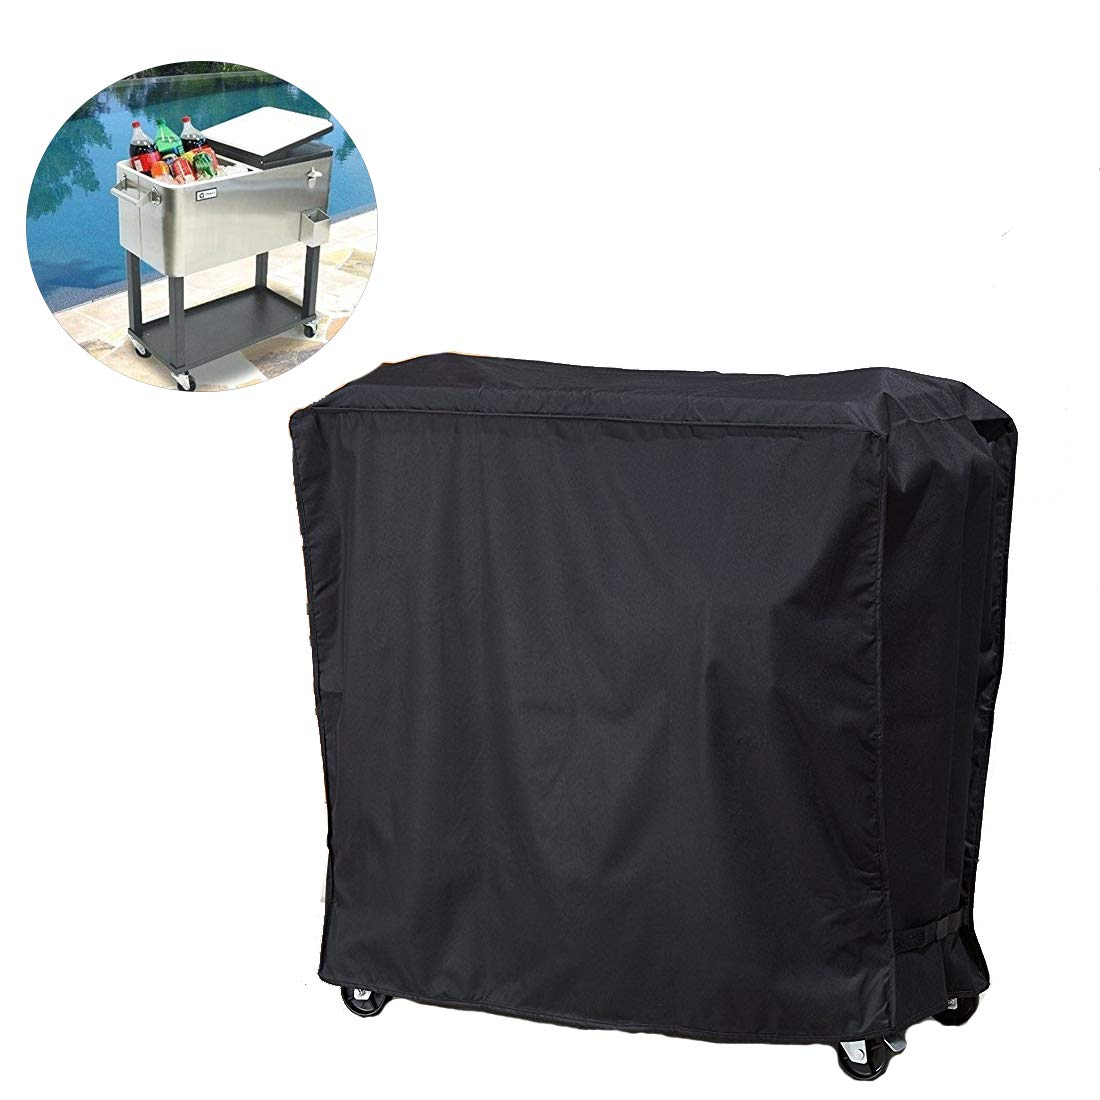 J&C 35x20x34in Cooler Cart Cover-Black Waterproof UV Resistant Patio Rolling Cooler for Most of 80 QT Patio Ice Chest Party Bar and Outdoors Rolling Cooler with Wheels by J&C